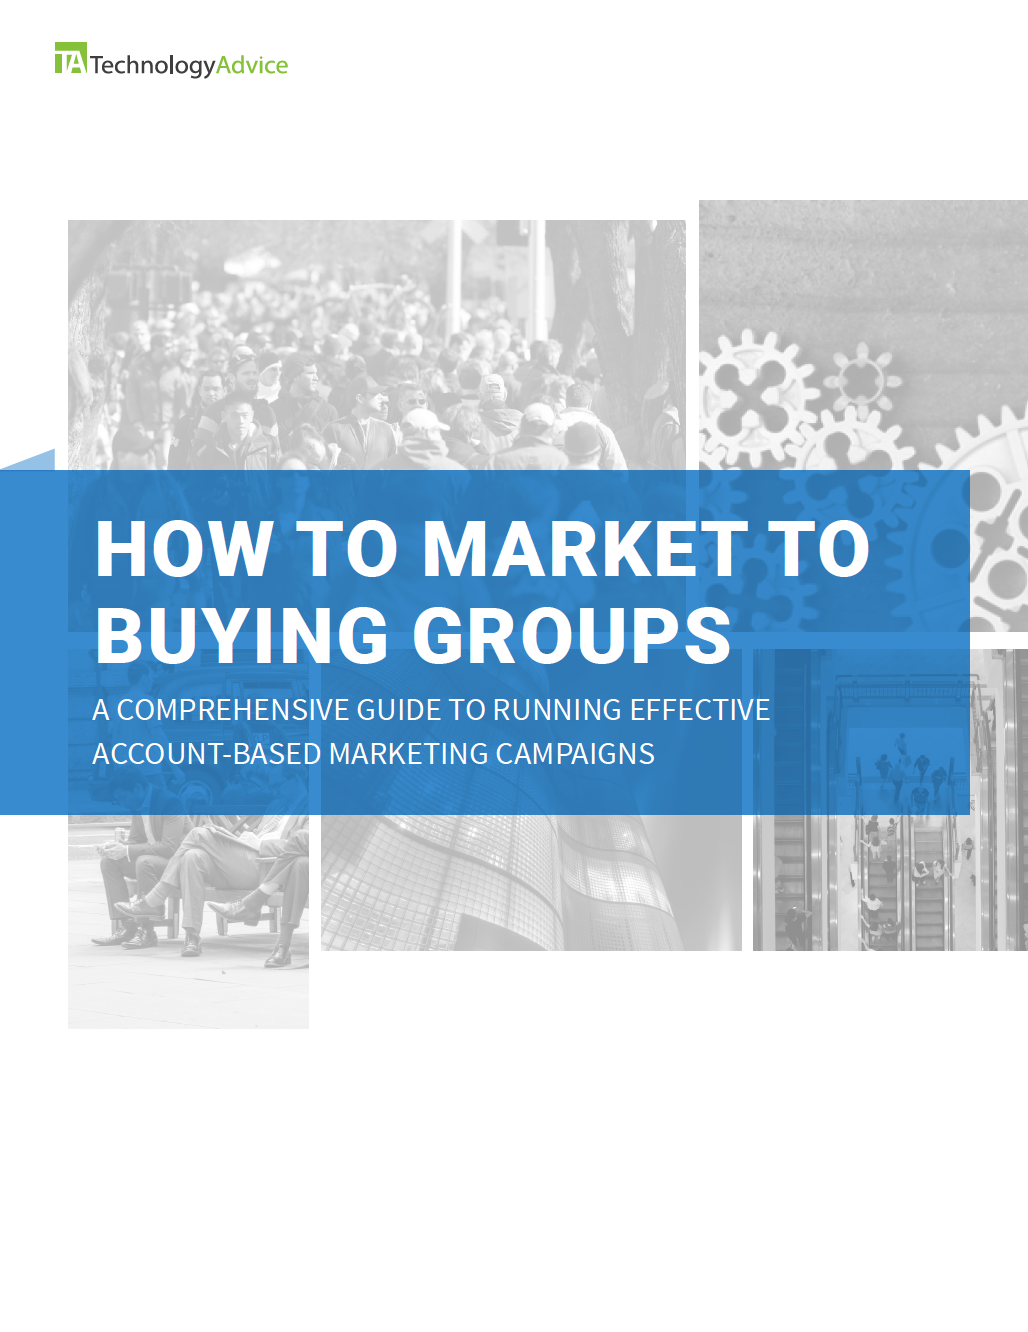 TechnologyAdvice Research Guide: How to Market to Buying Groups